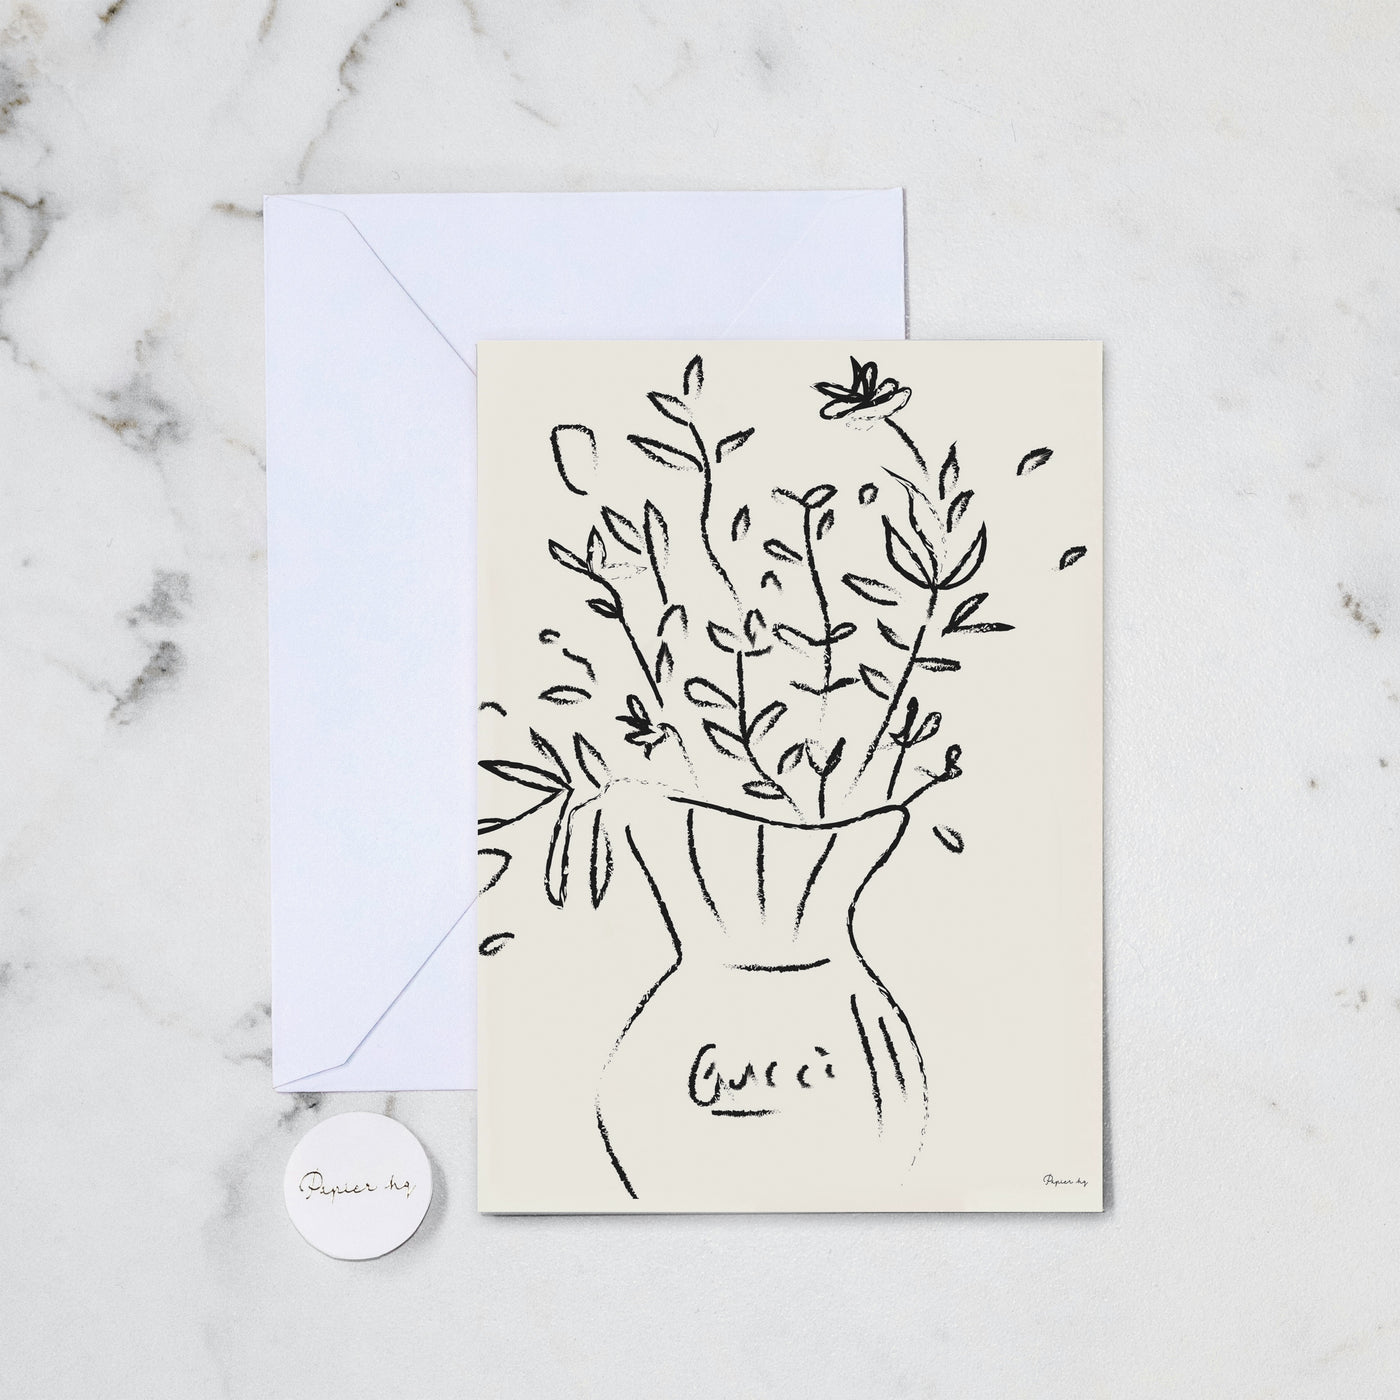 GUCCI FLOWERS GREETING CARD